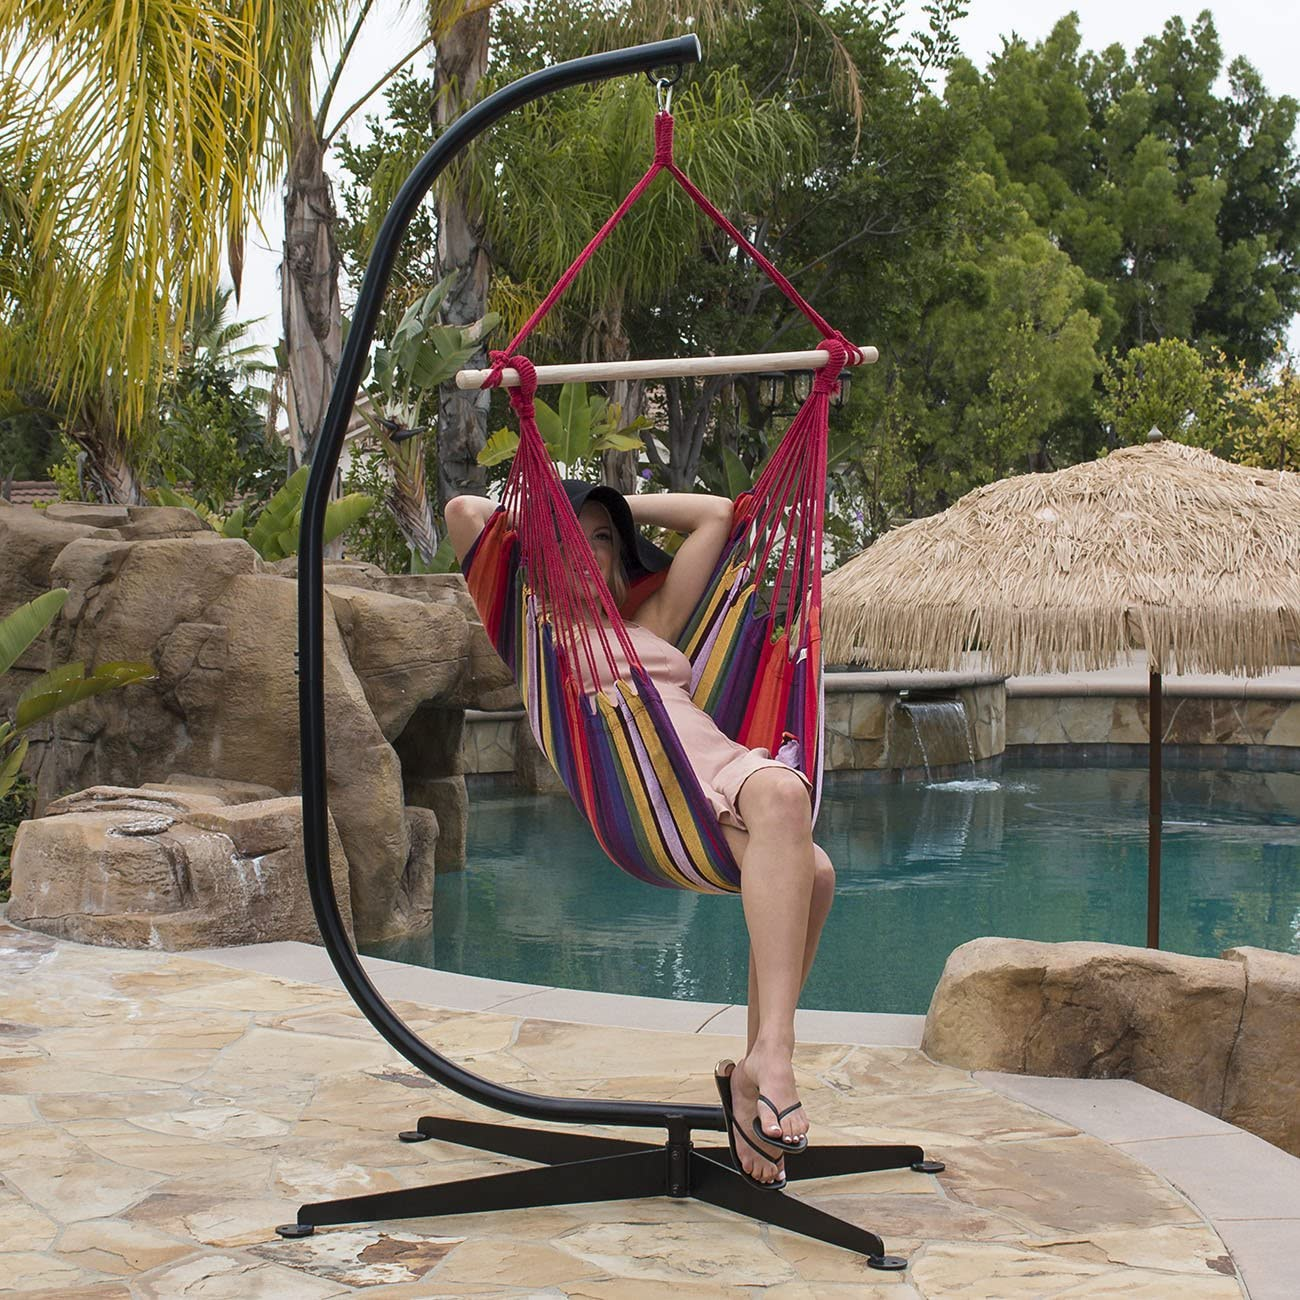 Greenstell Large Caribbean Hammock Hanging Chair with Swing Swivel and Hanging Kits,Frictionless 360 Rotation,Swing Chair 100 Soft-Spun Polyester,for Indoor,Outdoor,Home,Patio,Garden 48 Inch Blue